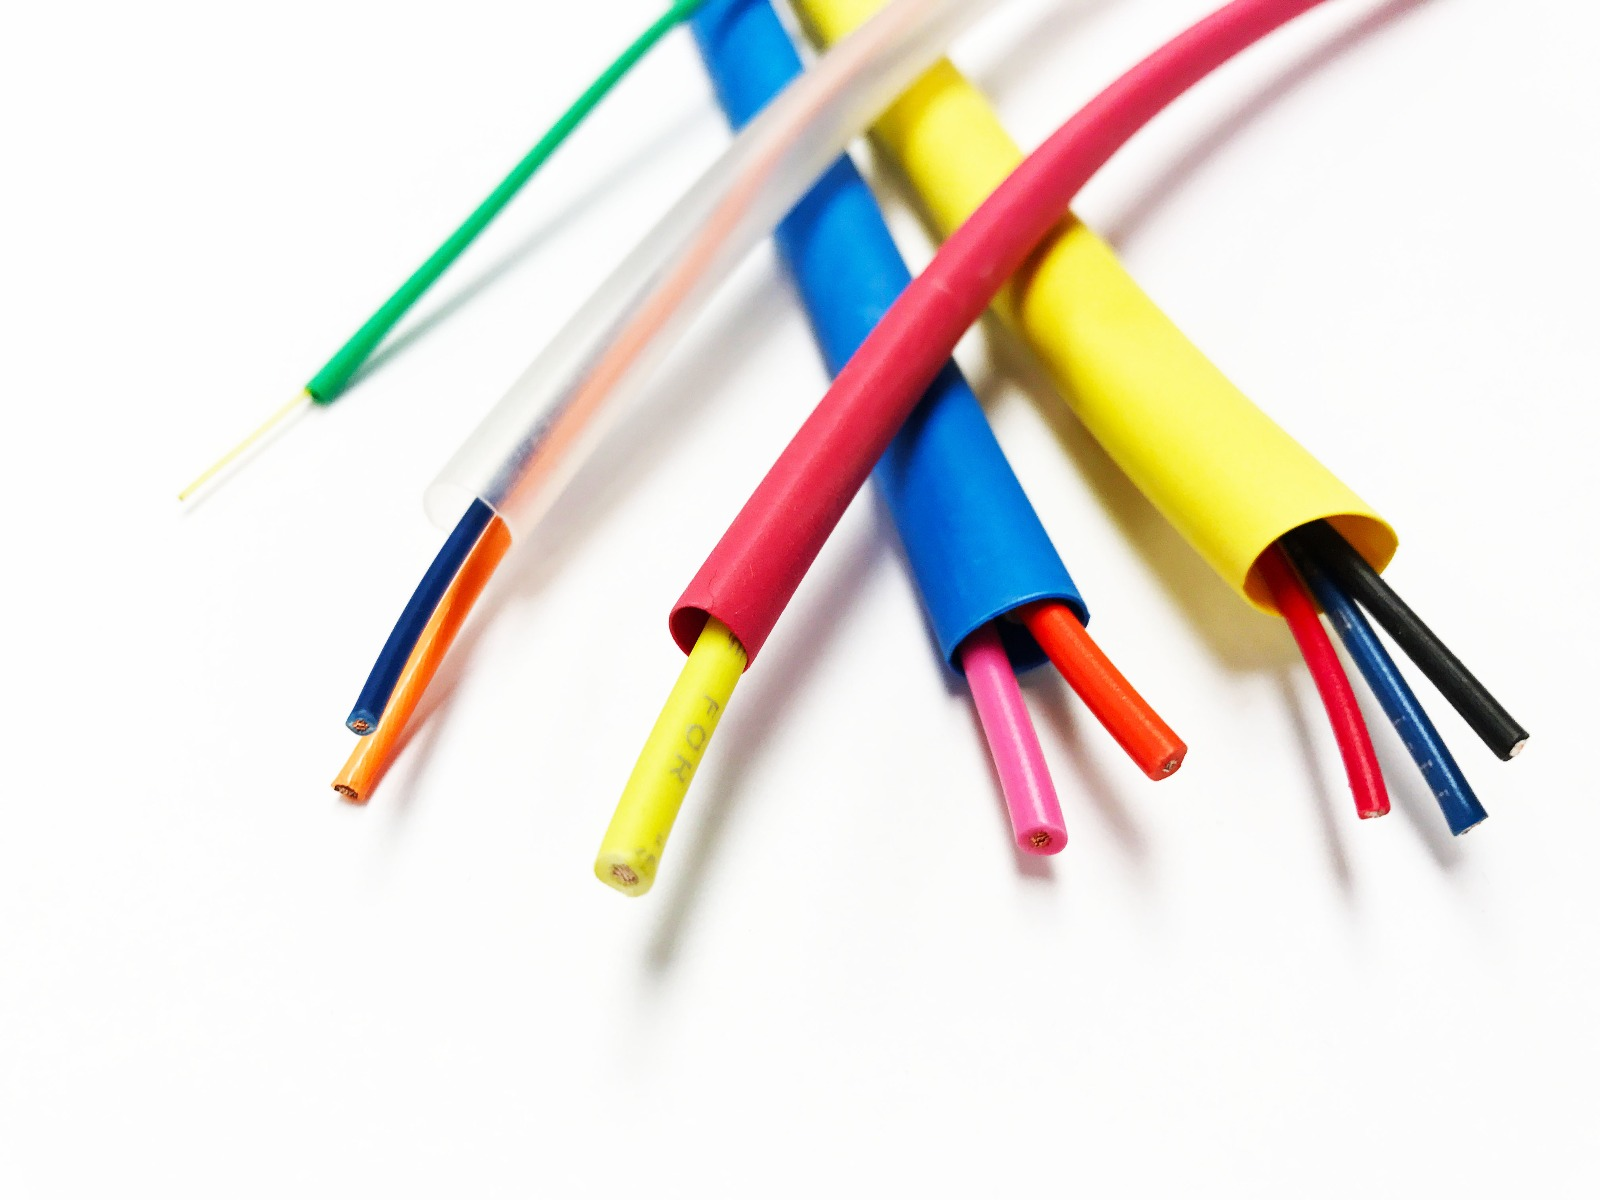 FEP Heat-Shrink Tubing